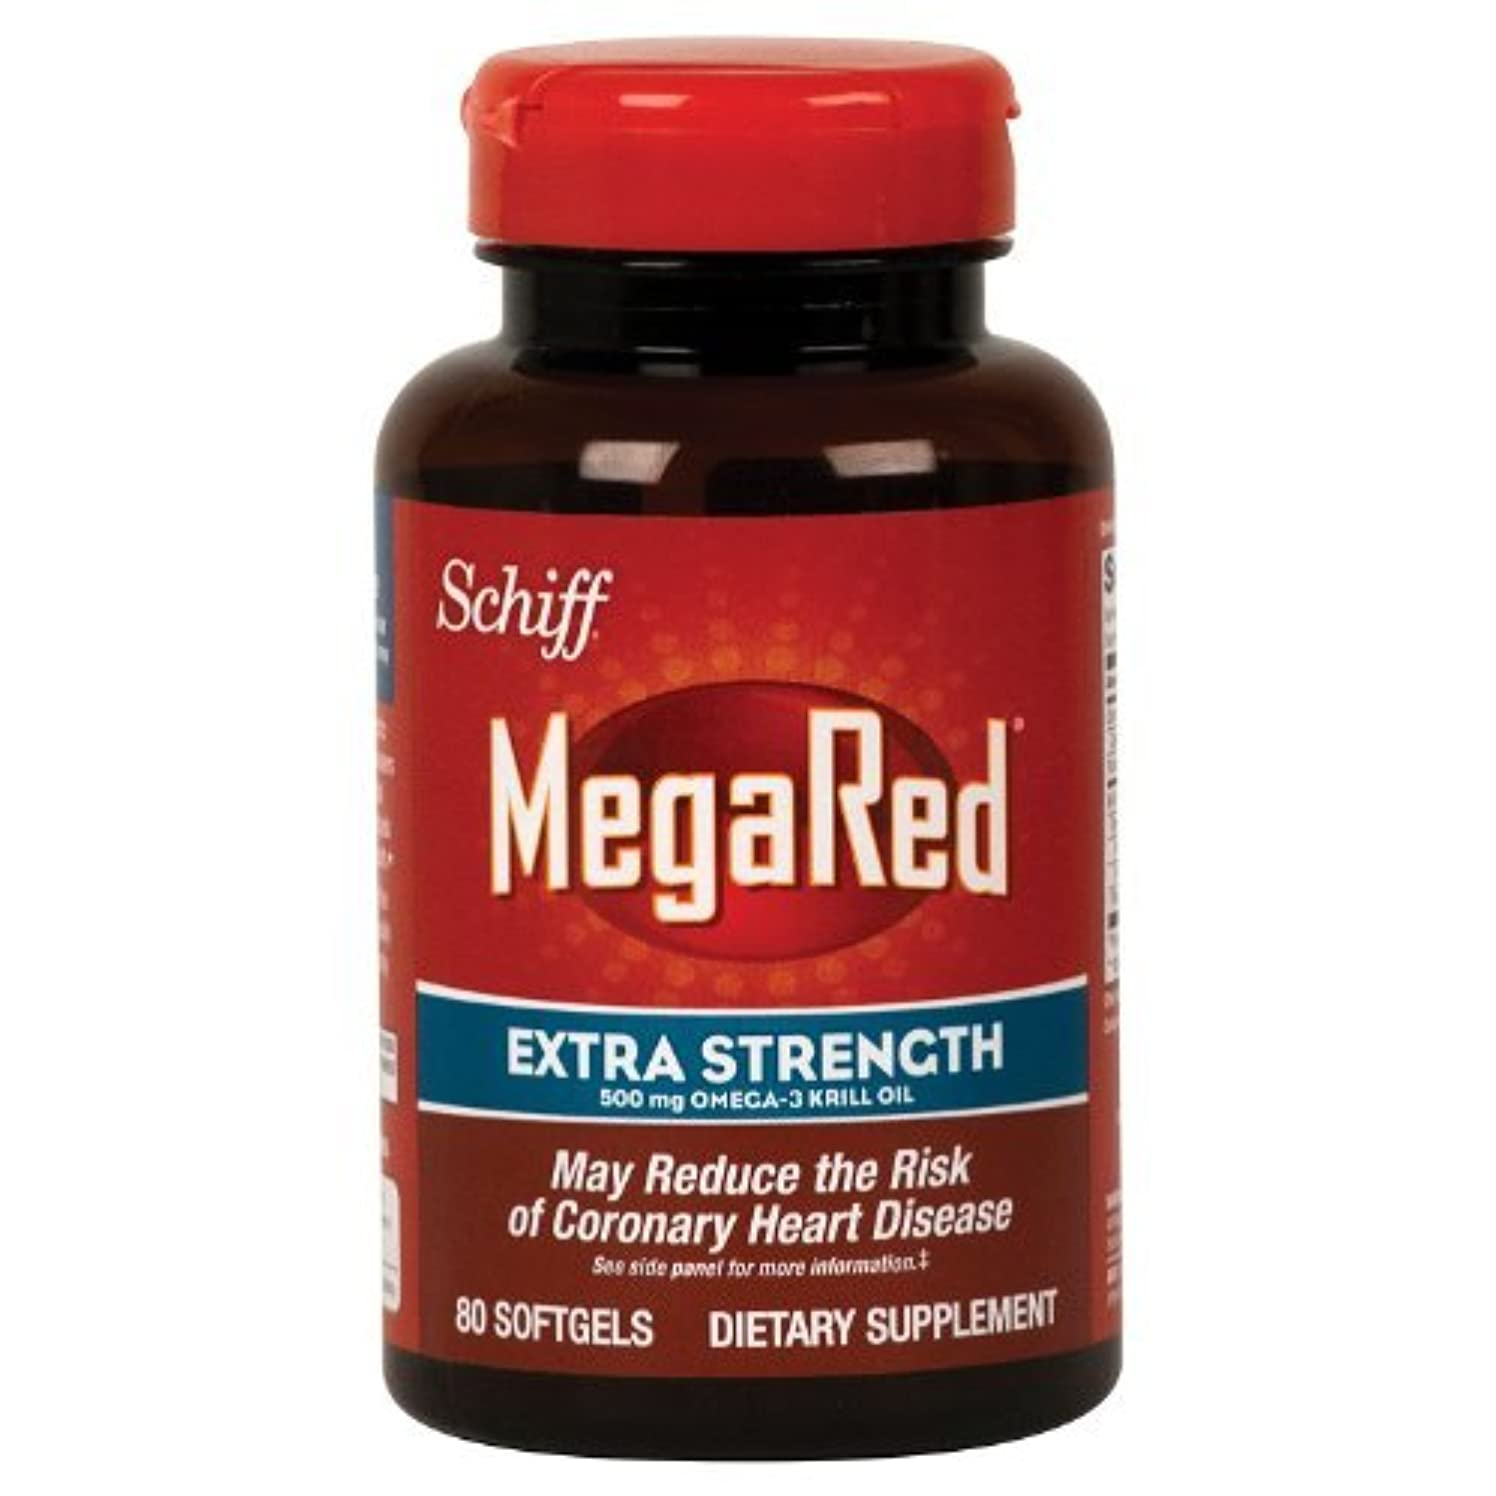 調整可能サバント出しますSchiff Megared Extra Strength 500mg Omega-3 Krill Oil - 80 Softgels by Simply Right [並行輸入品]